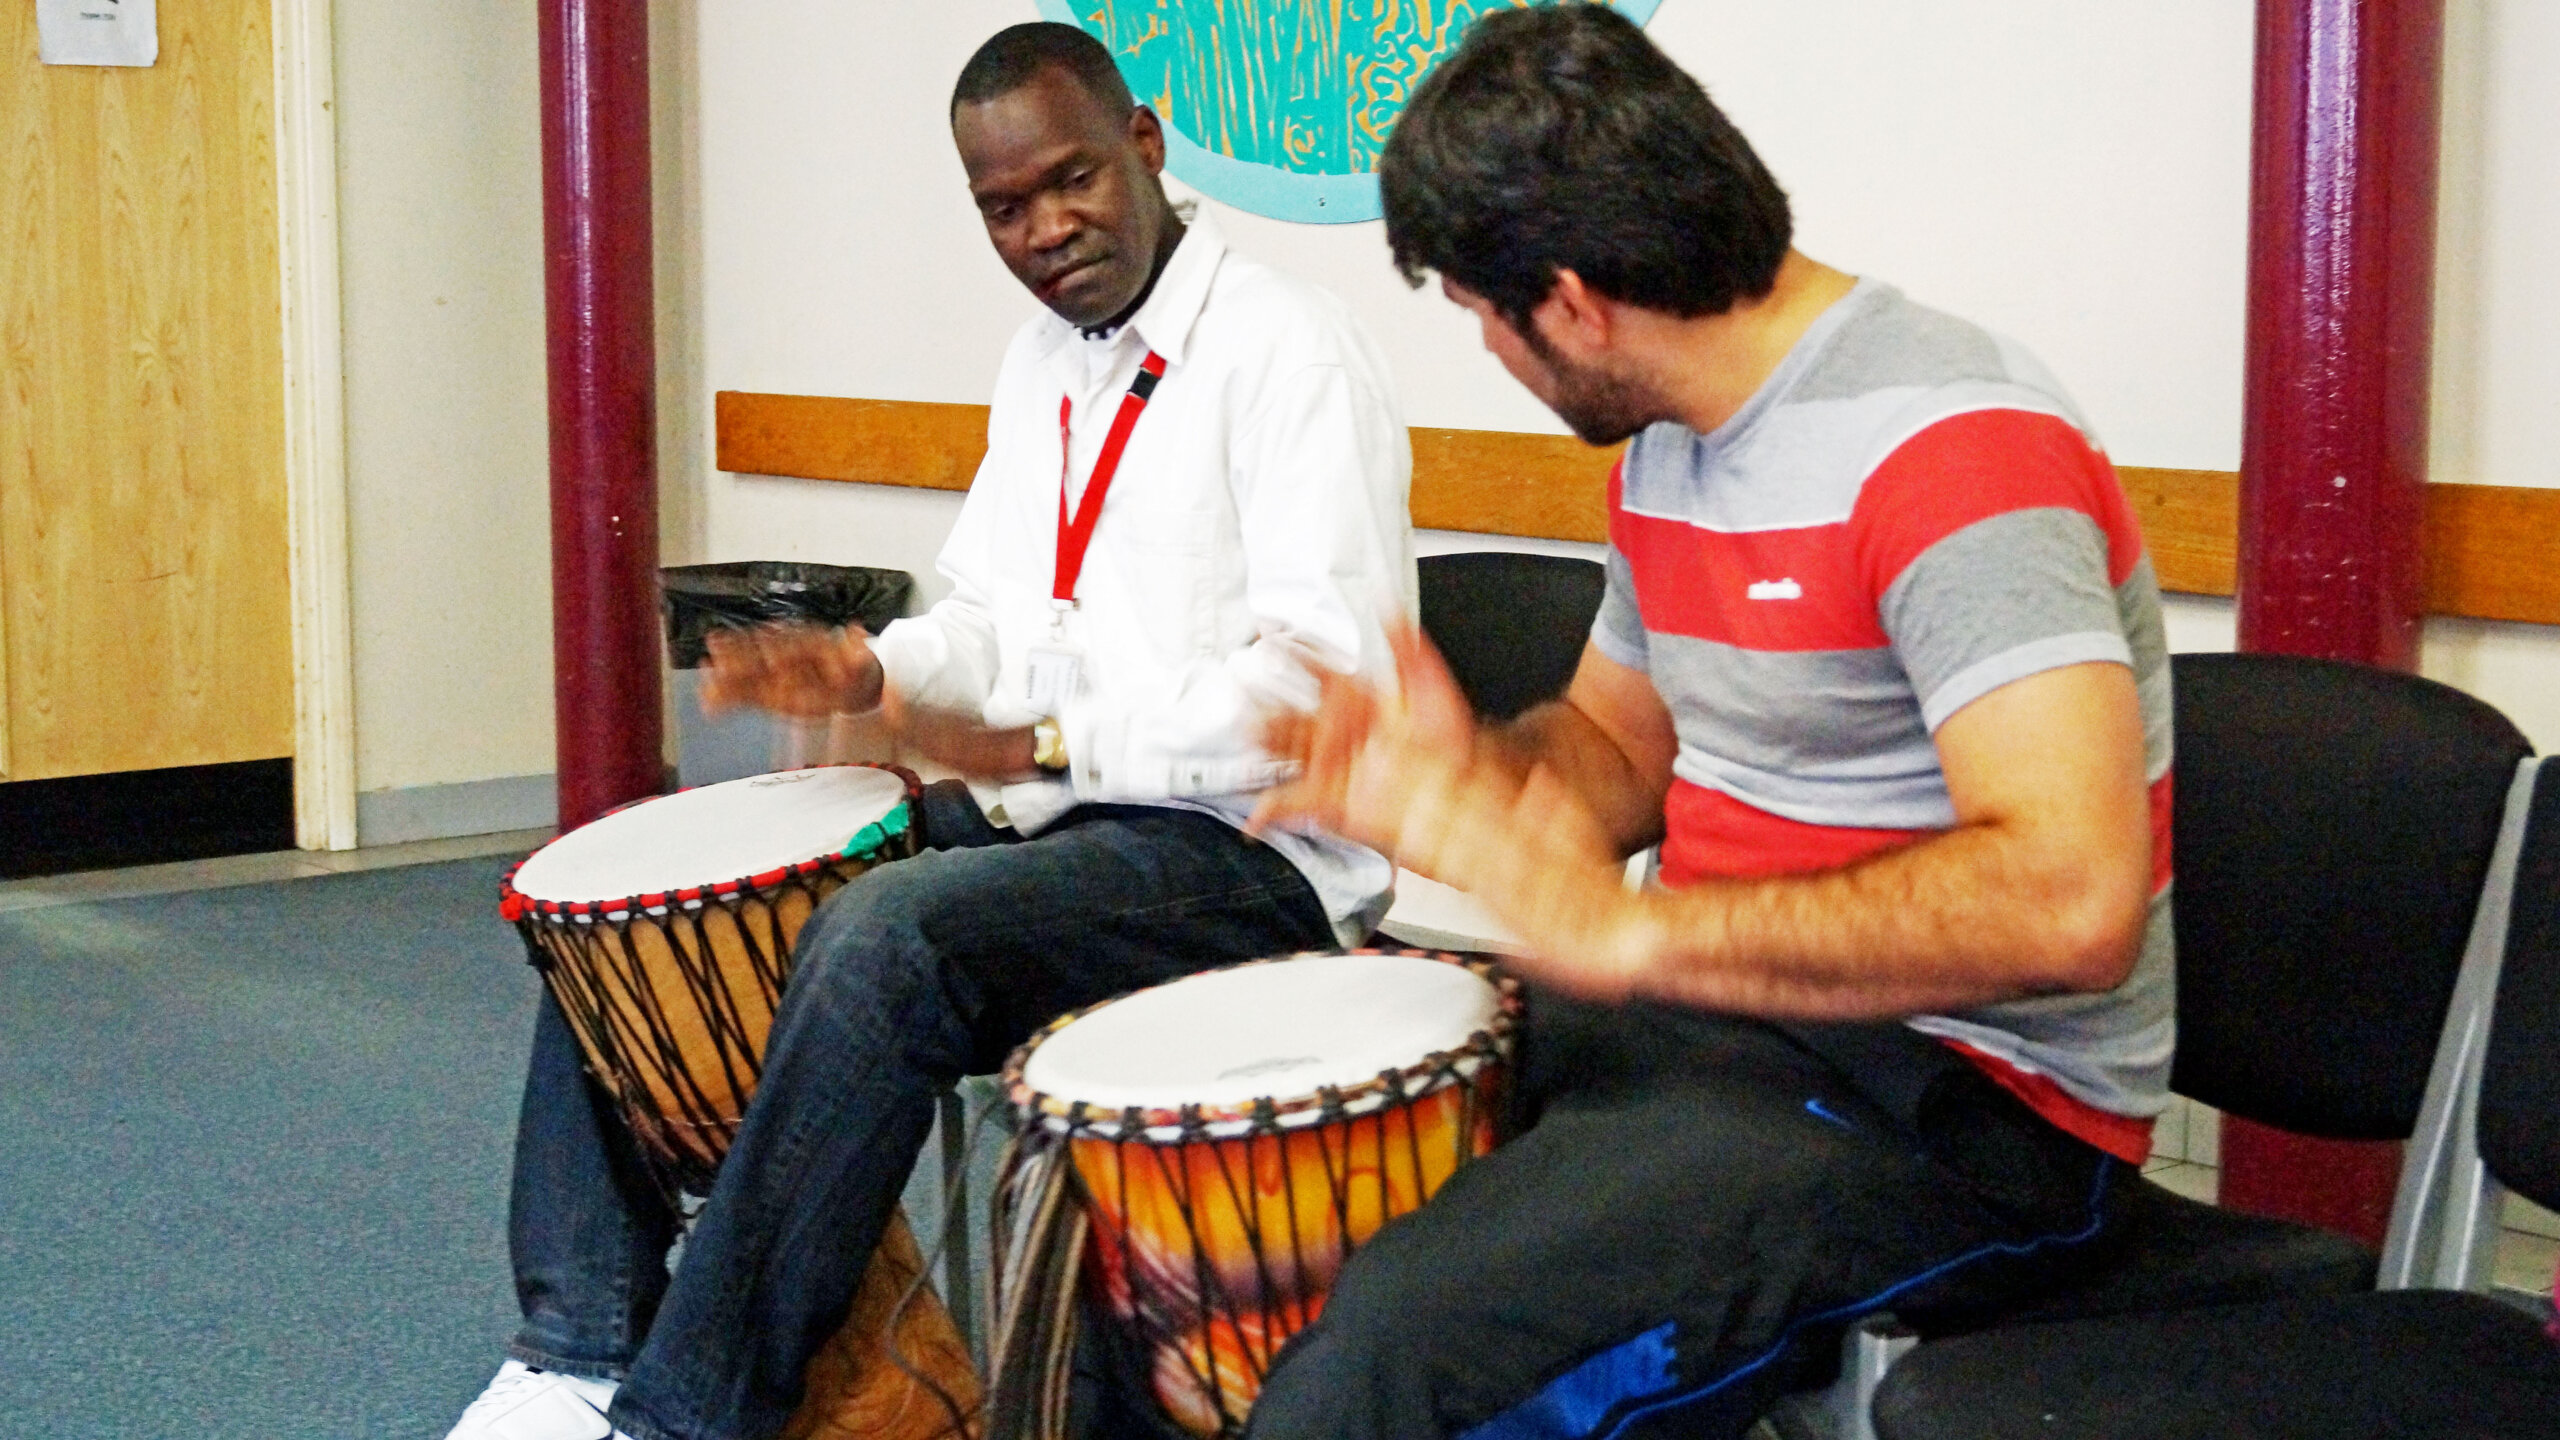 What does success look like for arts in criminal justice settings?